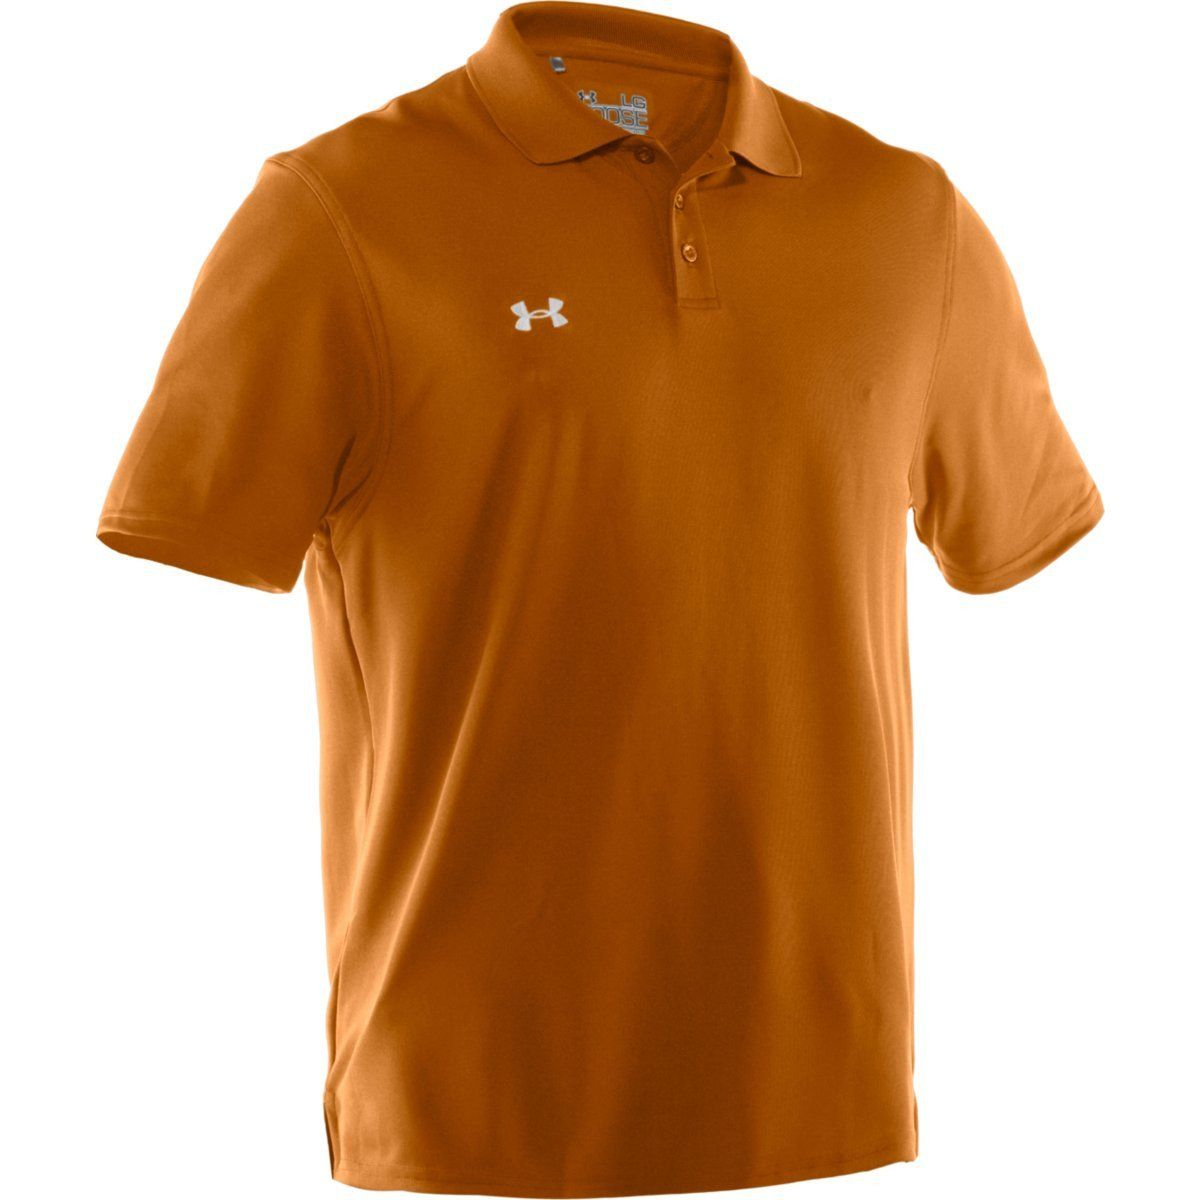 Under Armour Mens Polo Orange Chad Crowley Productions